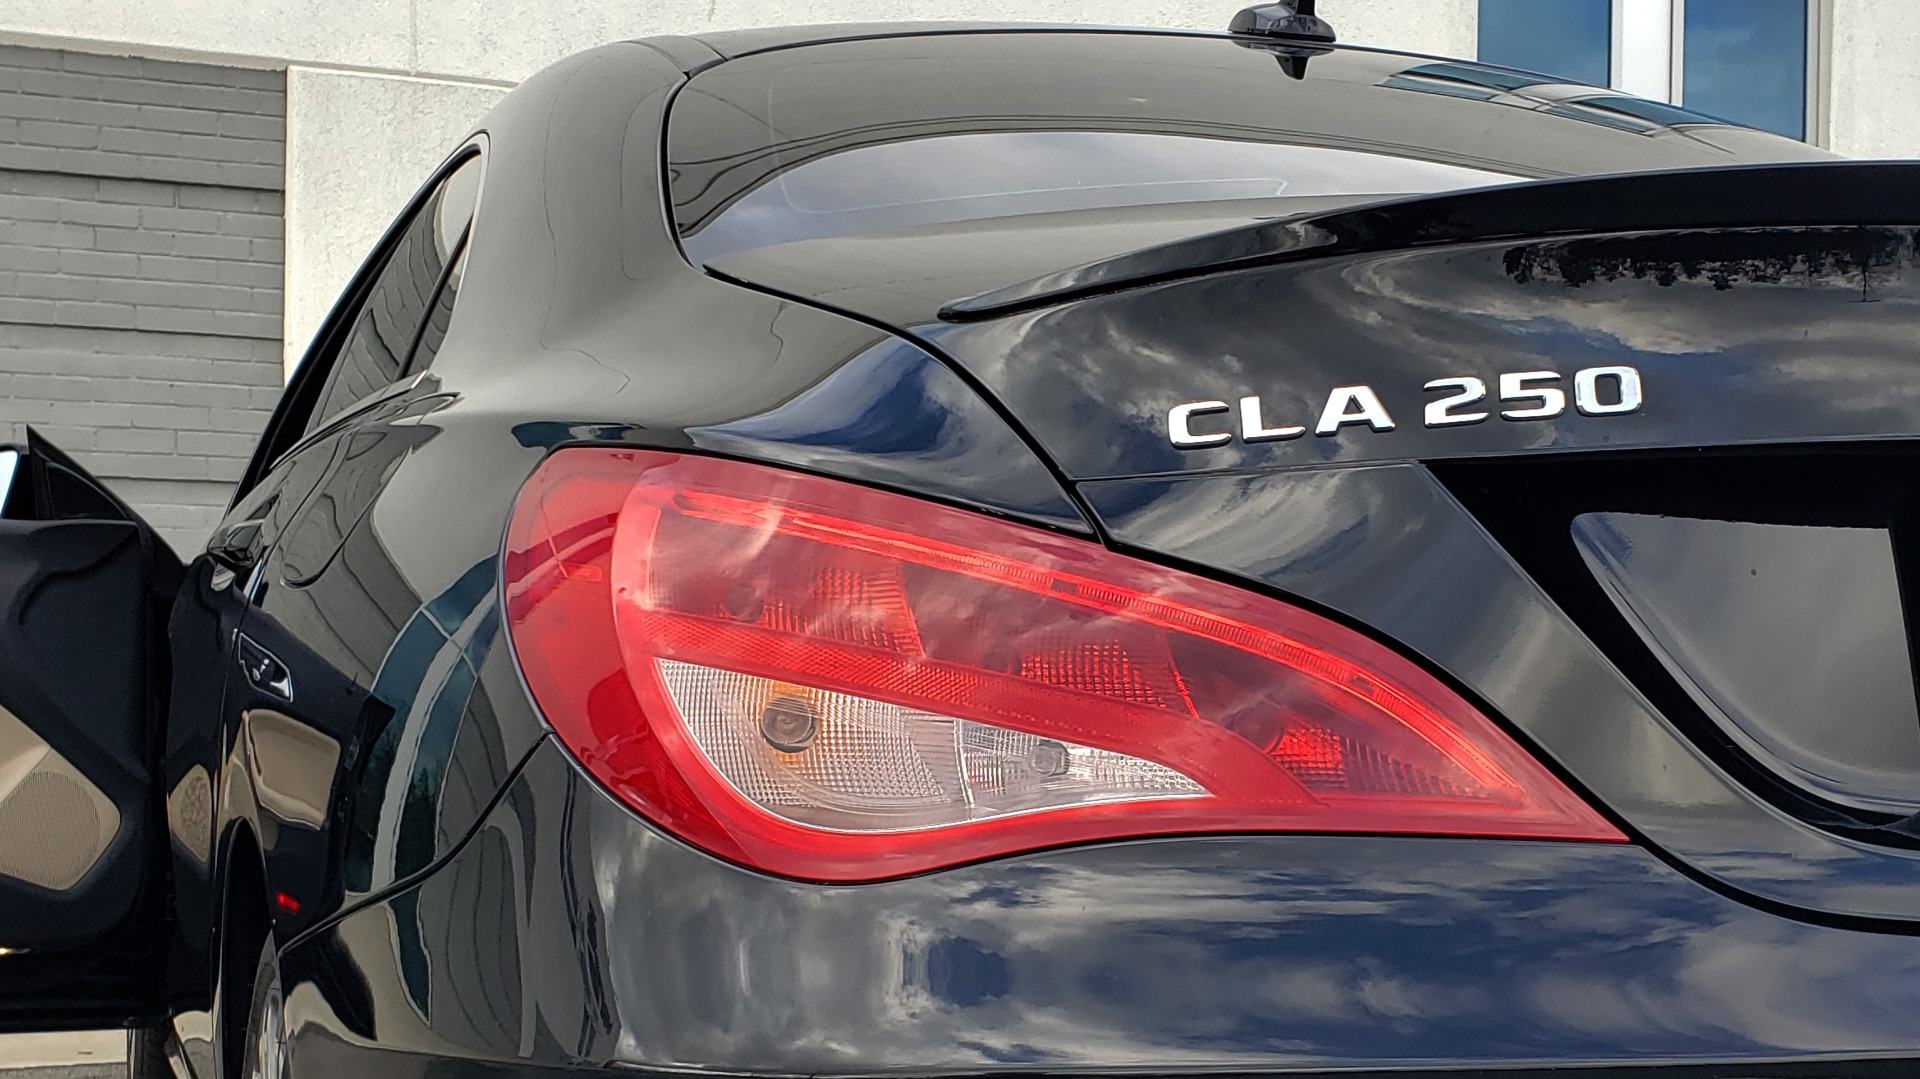 Used 2018 Mercedes-Benz CLA 250 / HEATED SEATS / BSA / APPLE CARPLAY / ANDROID AUTO / 18IN WHEEL for sale $24,195 at Formula Imports in Charlotte NC 28227 27